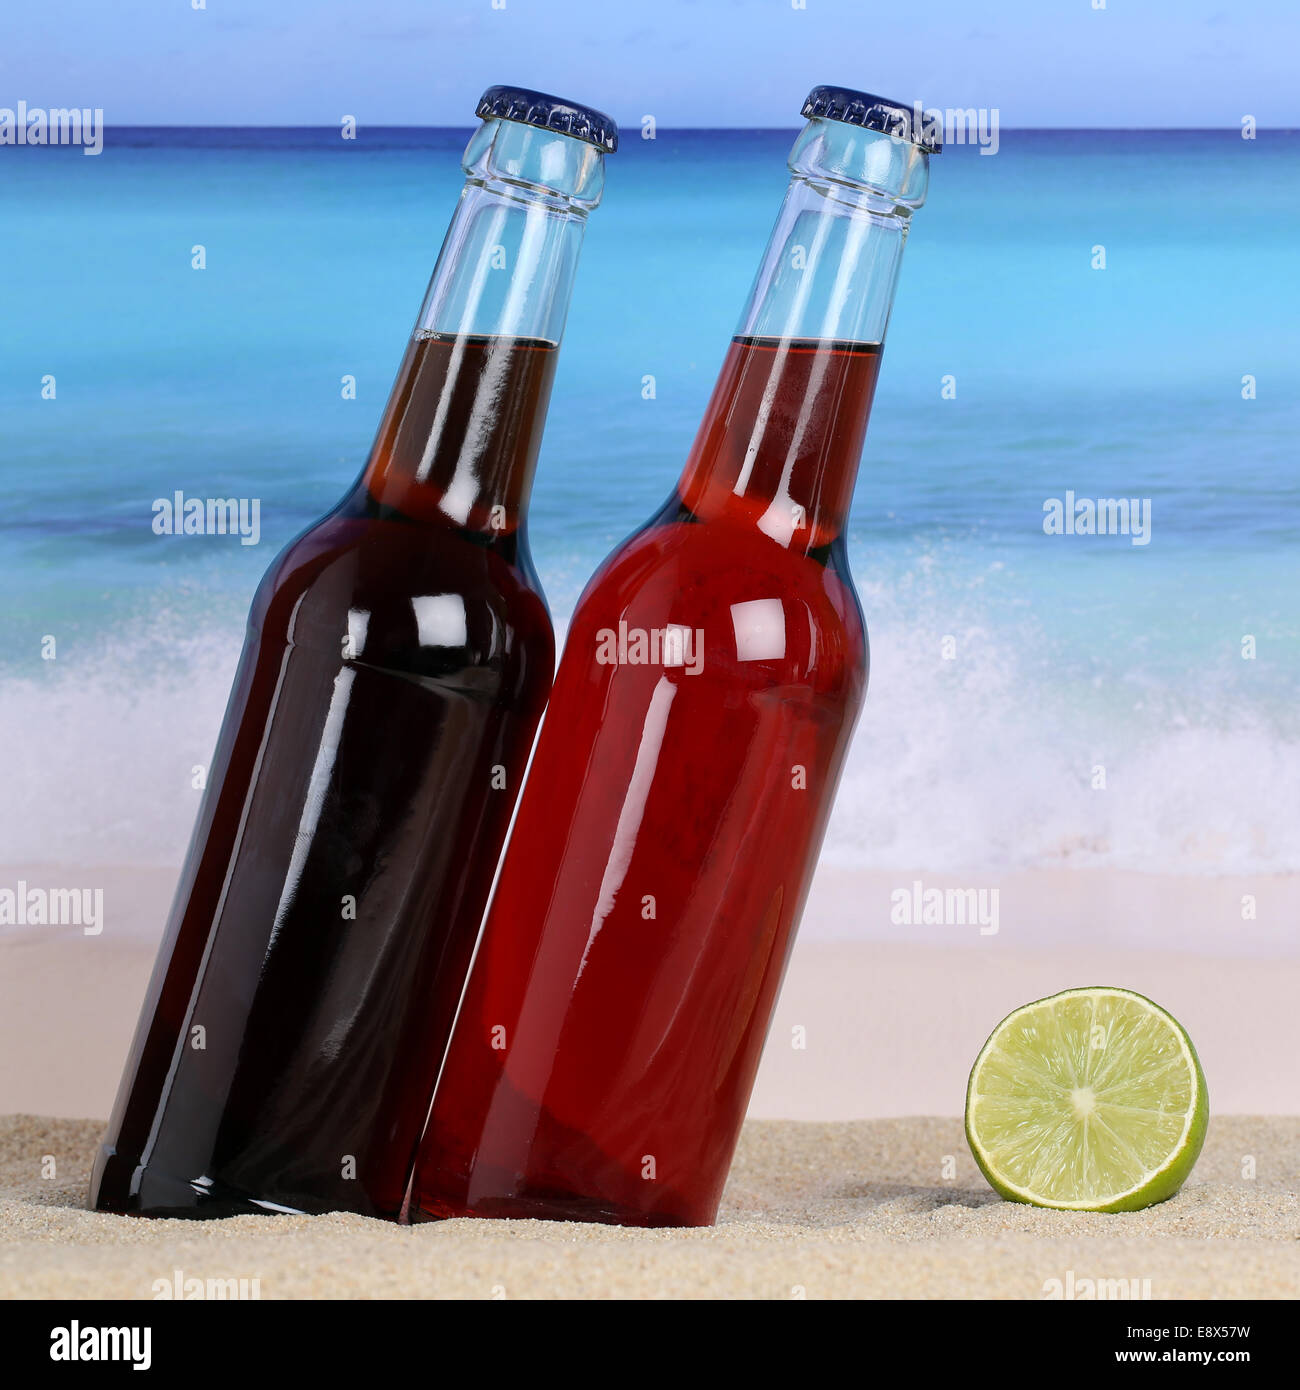 Cola and lemonade soft drinks on the beach in sand and sea - Stock Image